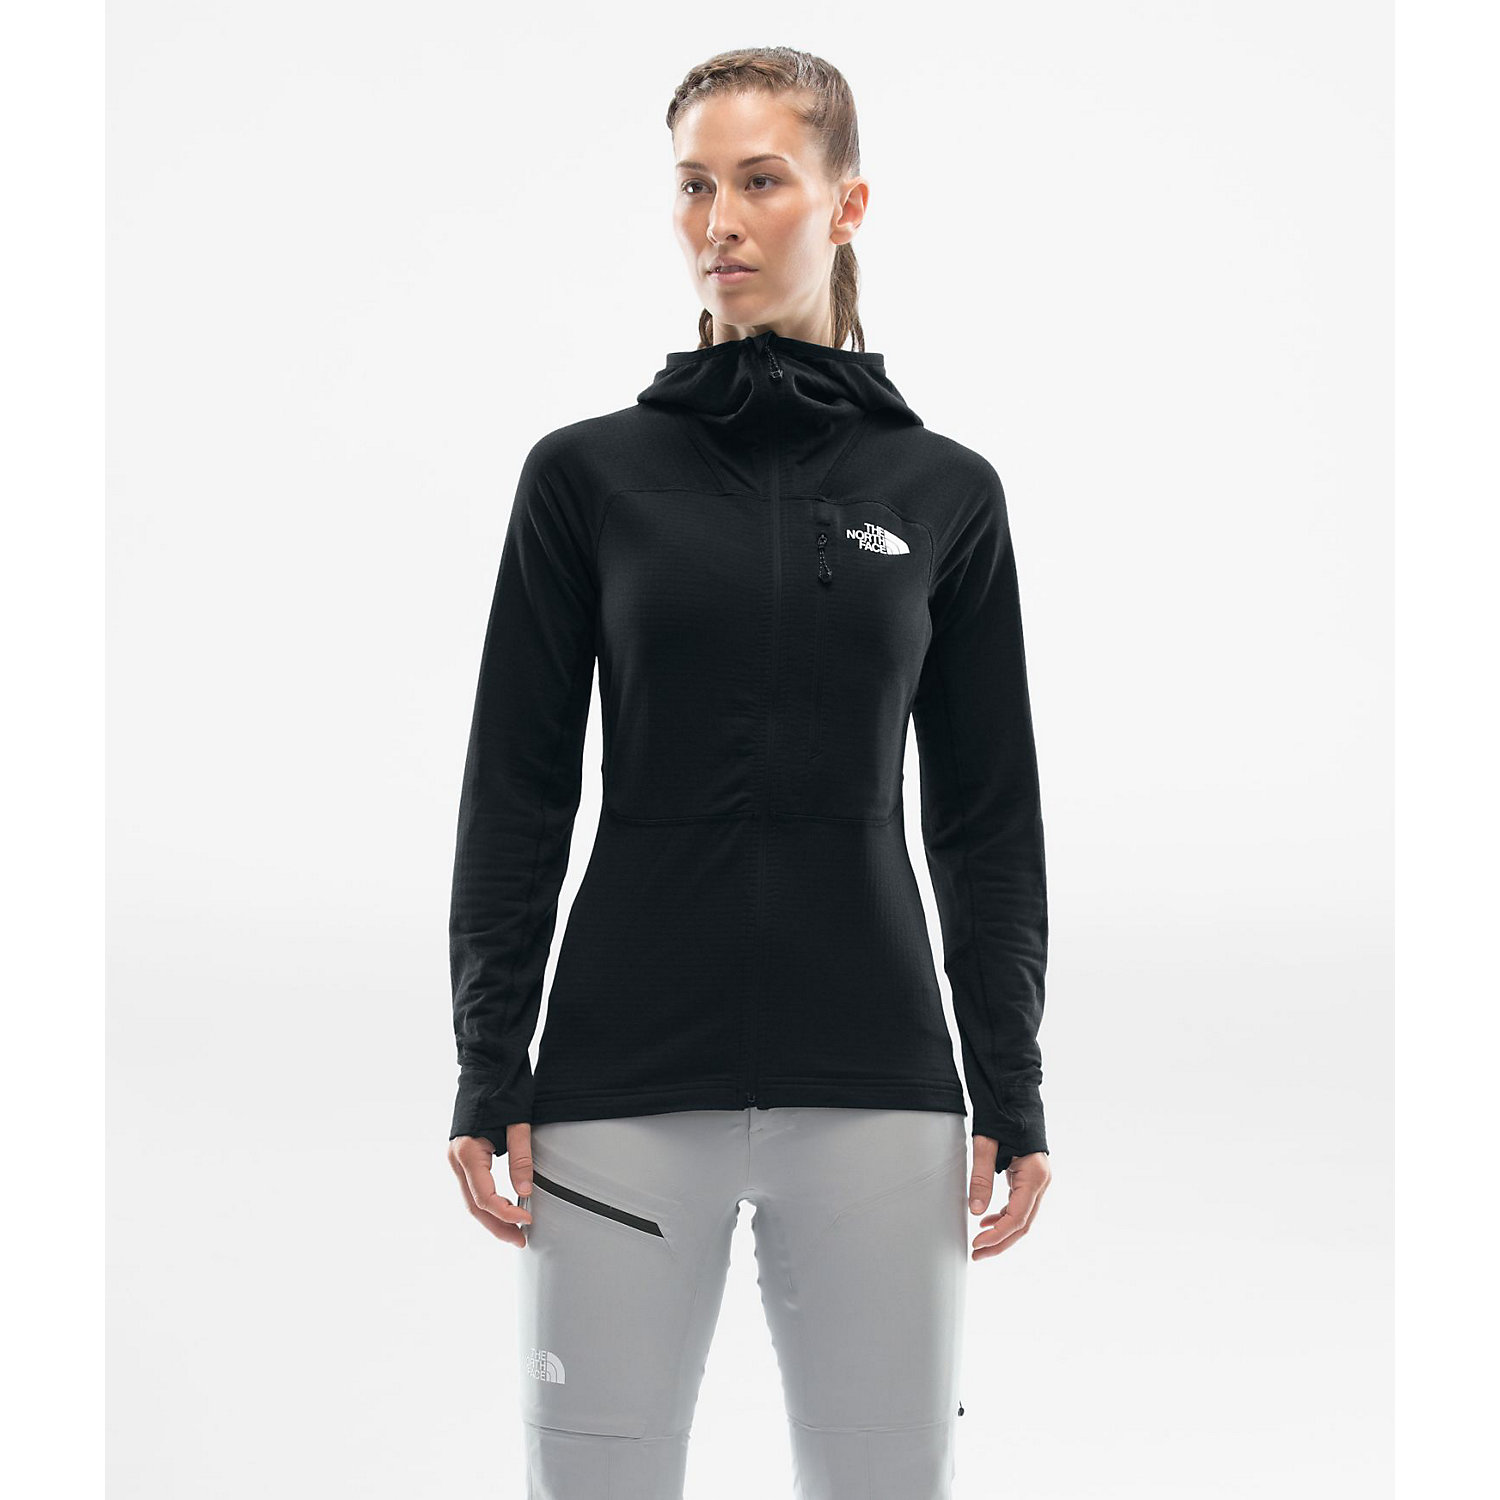 entrepreneur Successful melted  The North Face Women's Summit L2 Power Grid LT Hoodie - Moosejaw